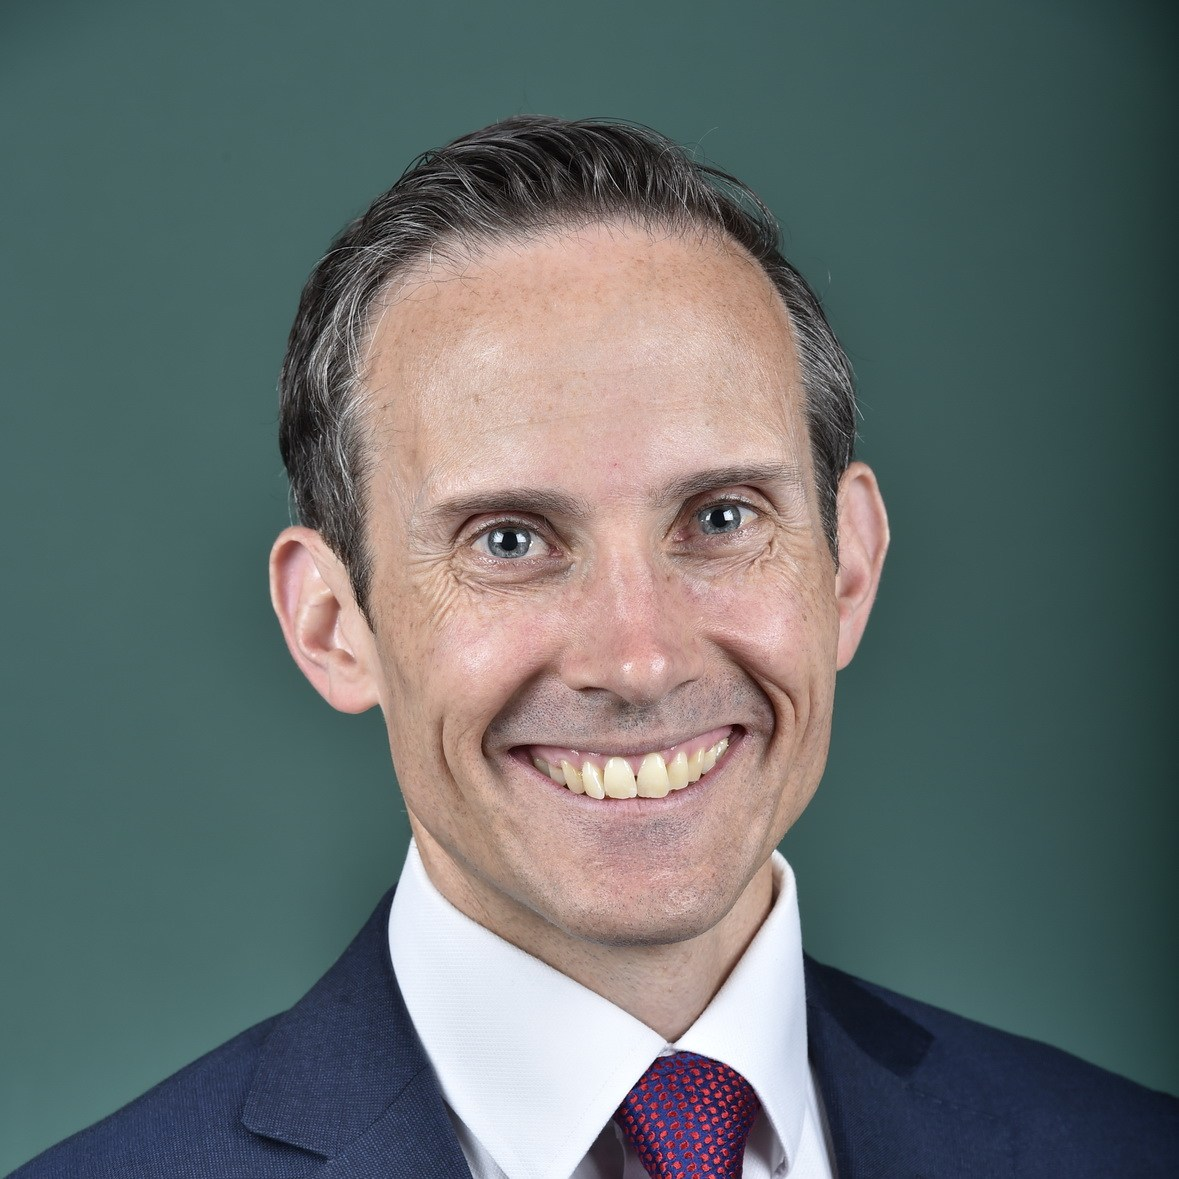 The Hon Dr Andrew Leigh MP, Member for Fenner, Australian Capital Territory, Australian Labor Party, House of Representatives, official portrait, Wednesday 9 November 2016.  Credit: AUSPIC/DPS. Image by Michael Masters.